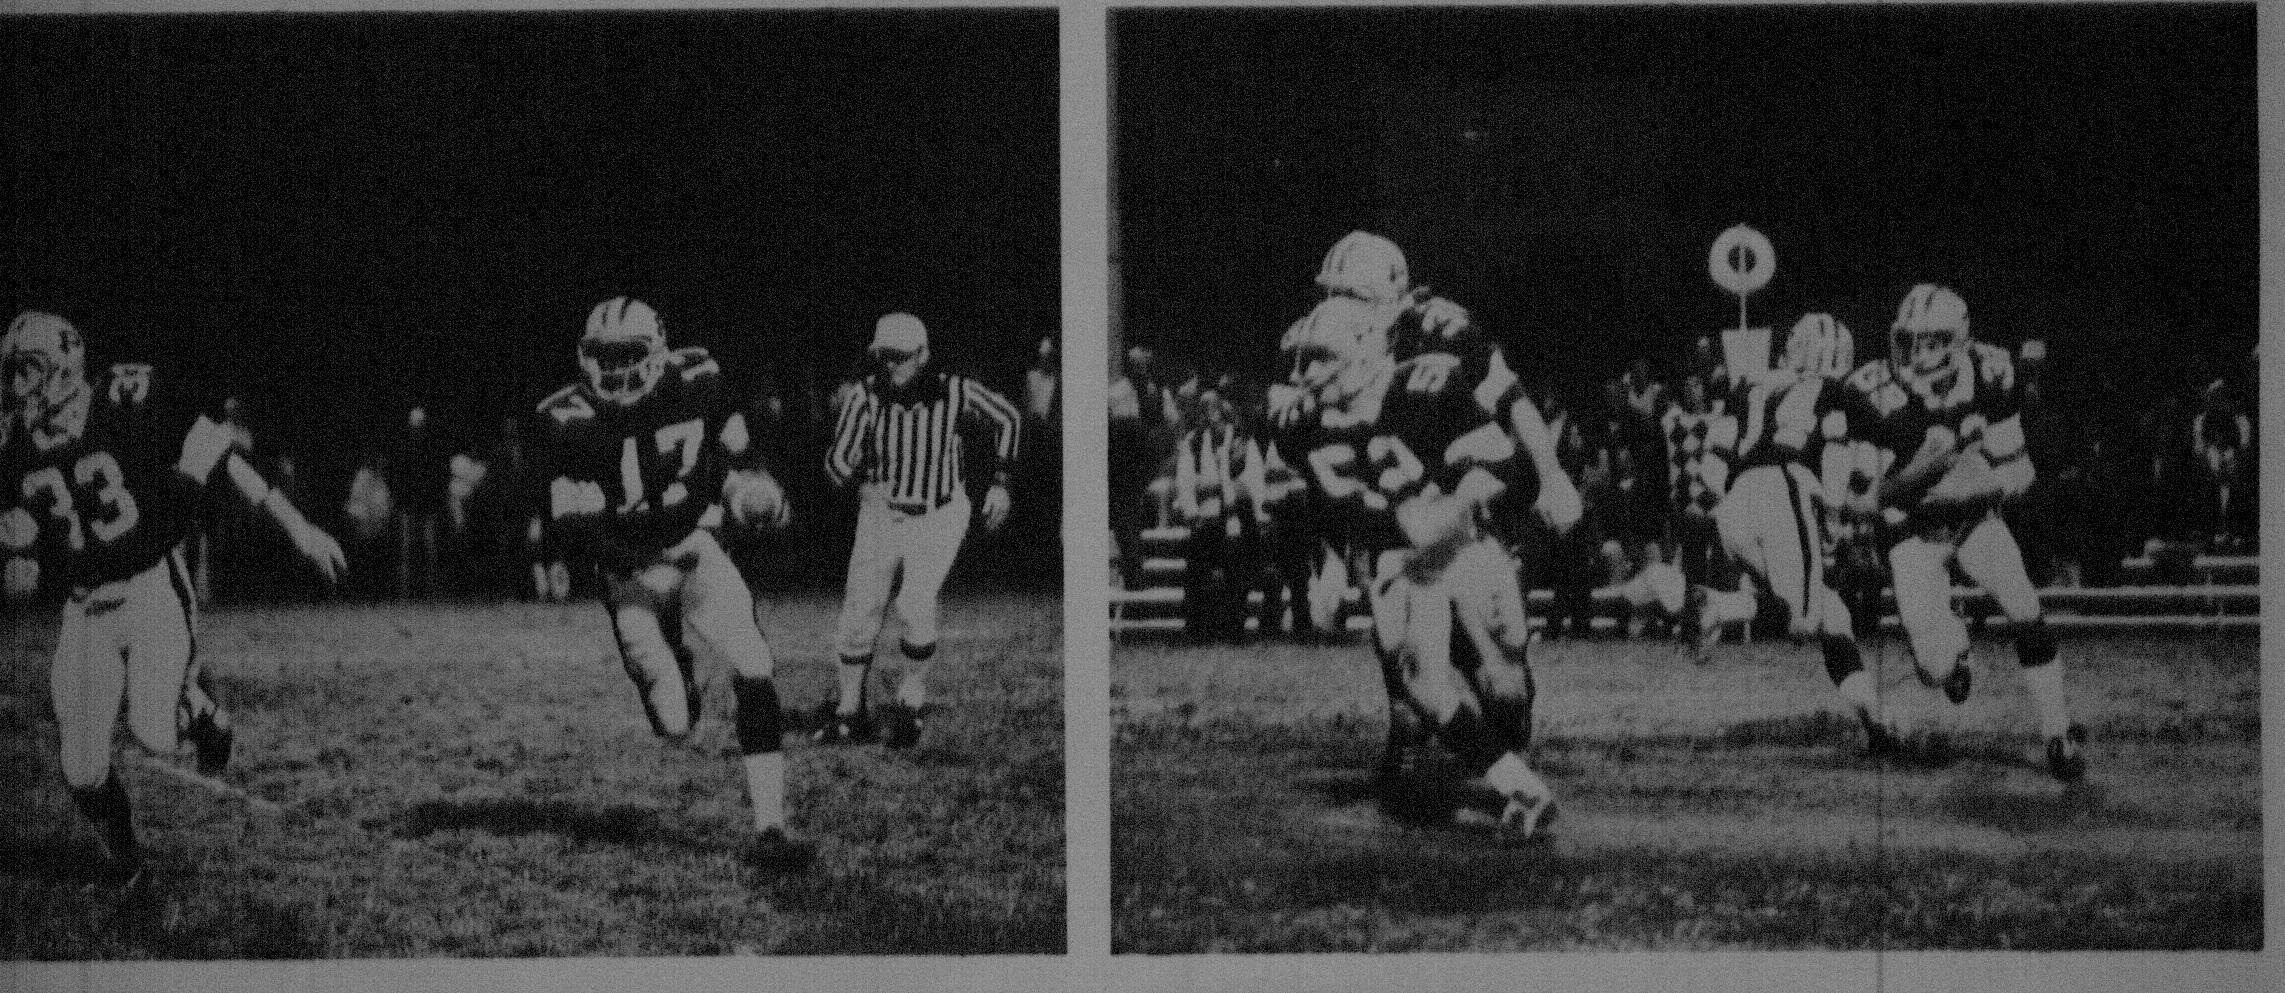 1979 SFL Championship team. On the left is #33 Gary Silva out in front of # 17 Terry Spivey.  To the right is Scott M. Ditty, #52 out in front of #32 Tim Lopez.